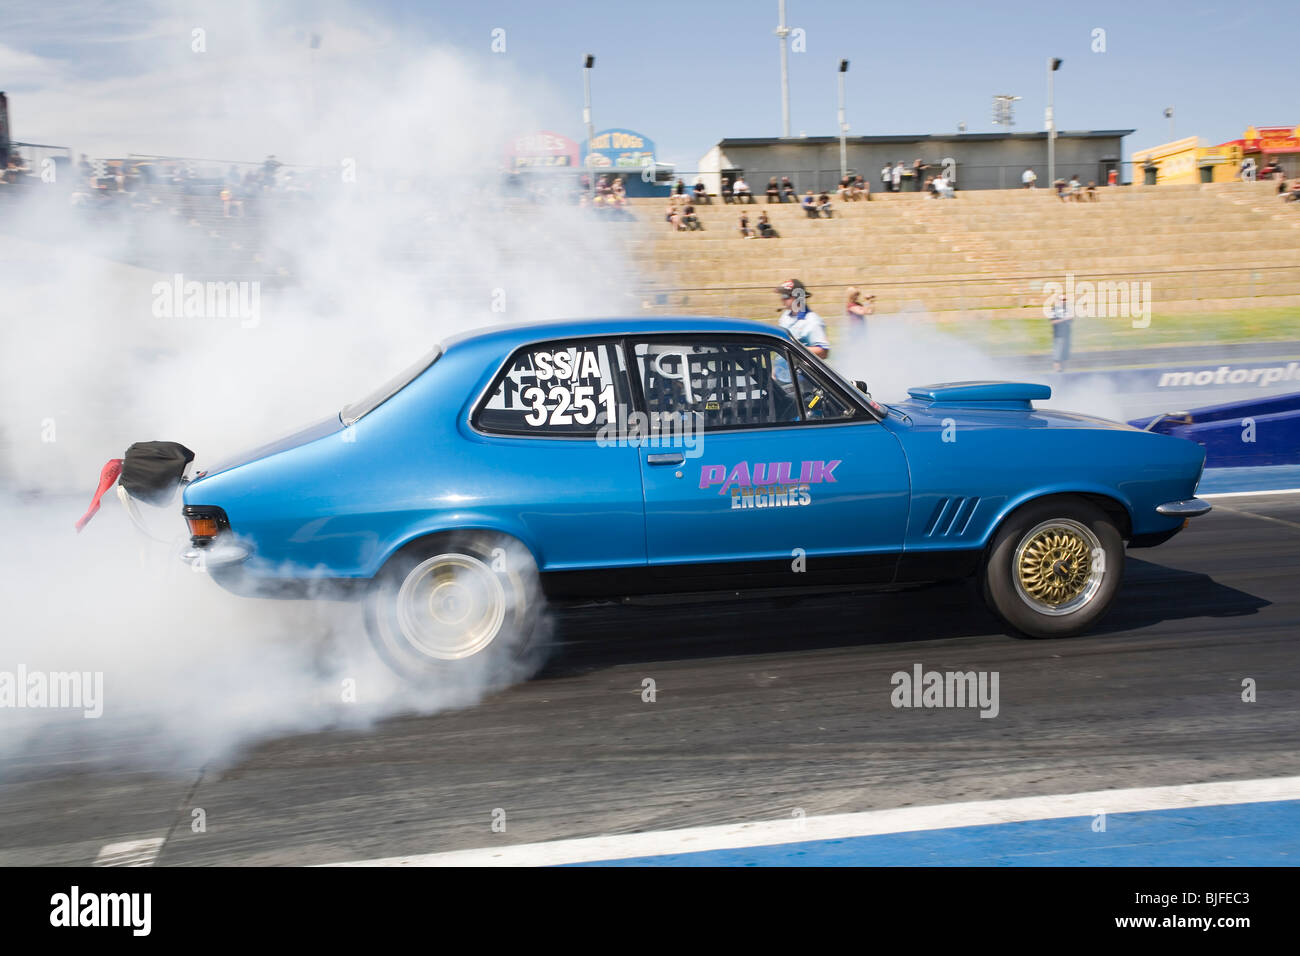 Iconic Australian Holden Torana drag car performing a tyre smoking burnout - Stock Image